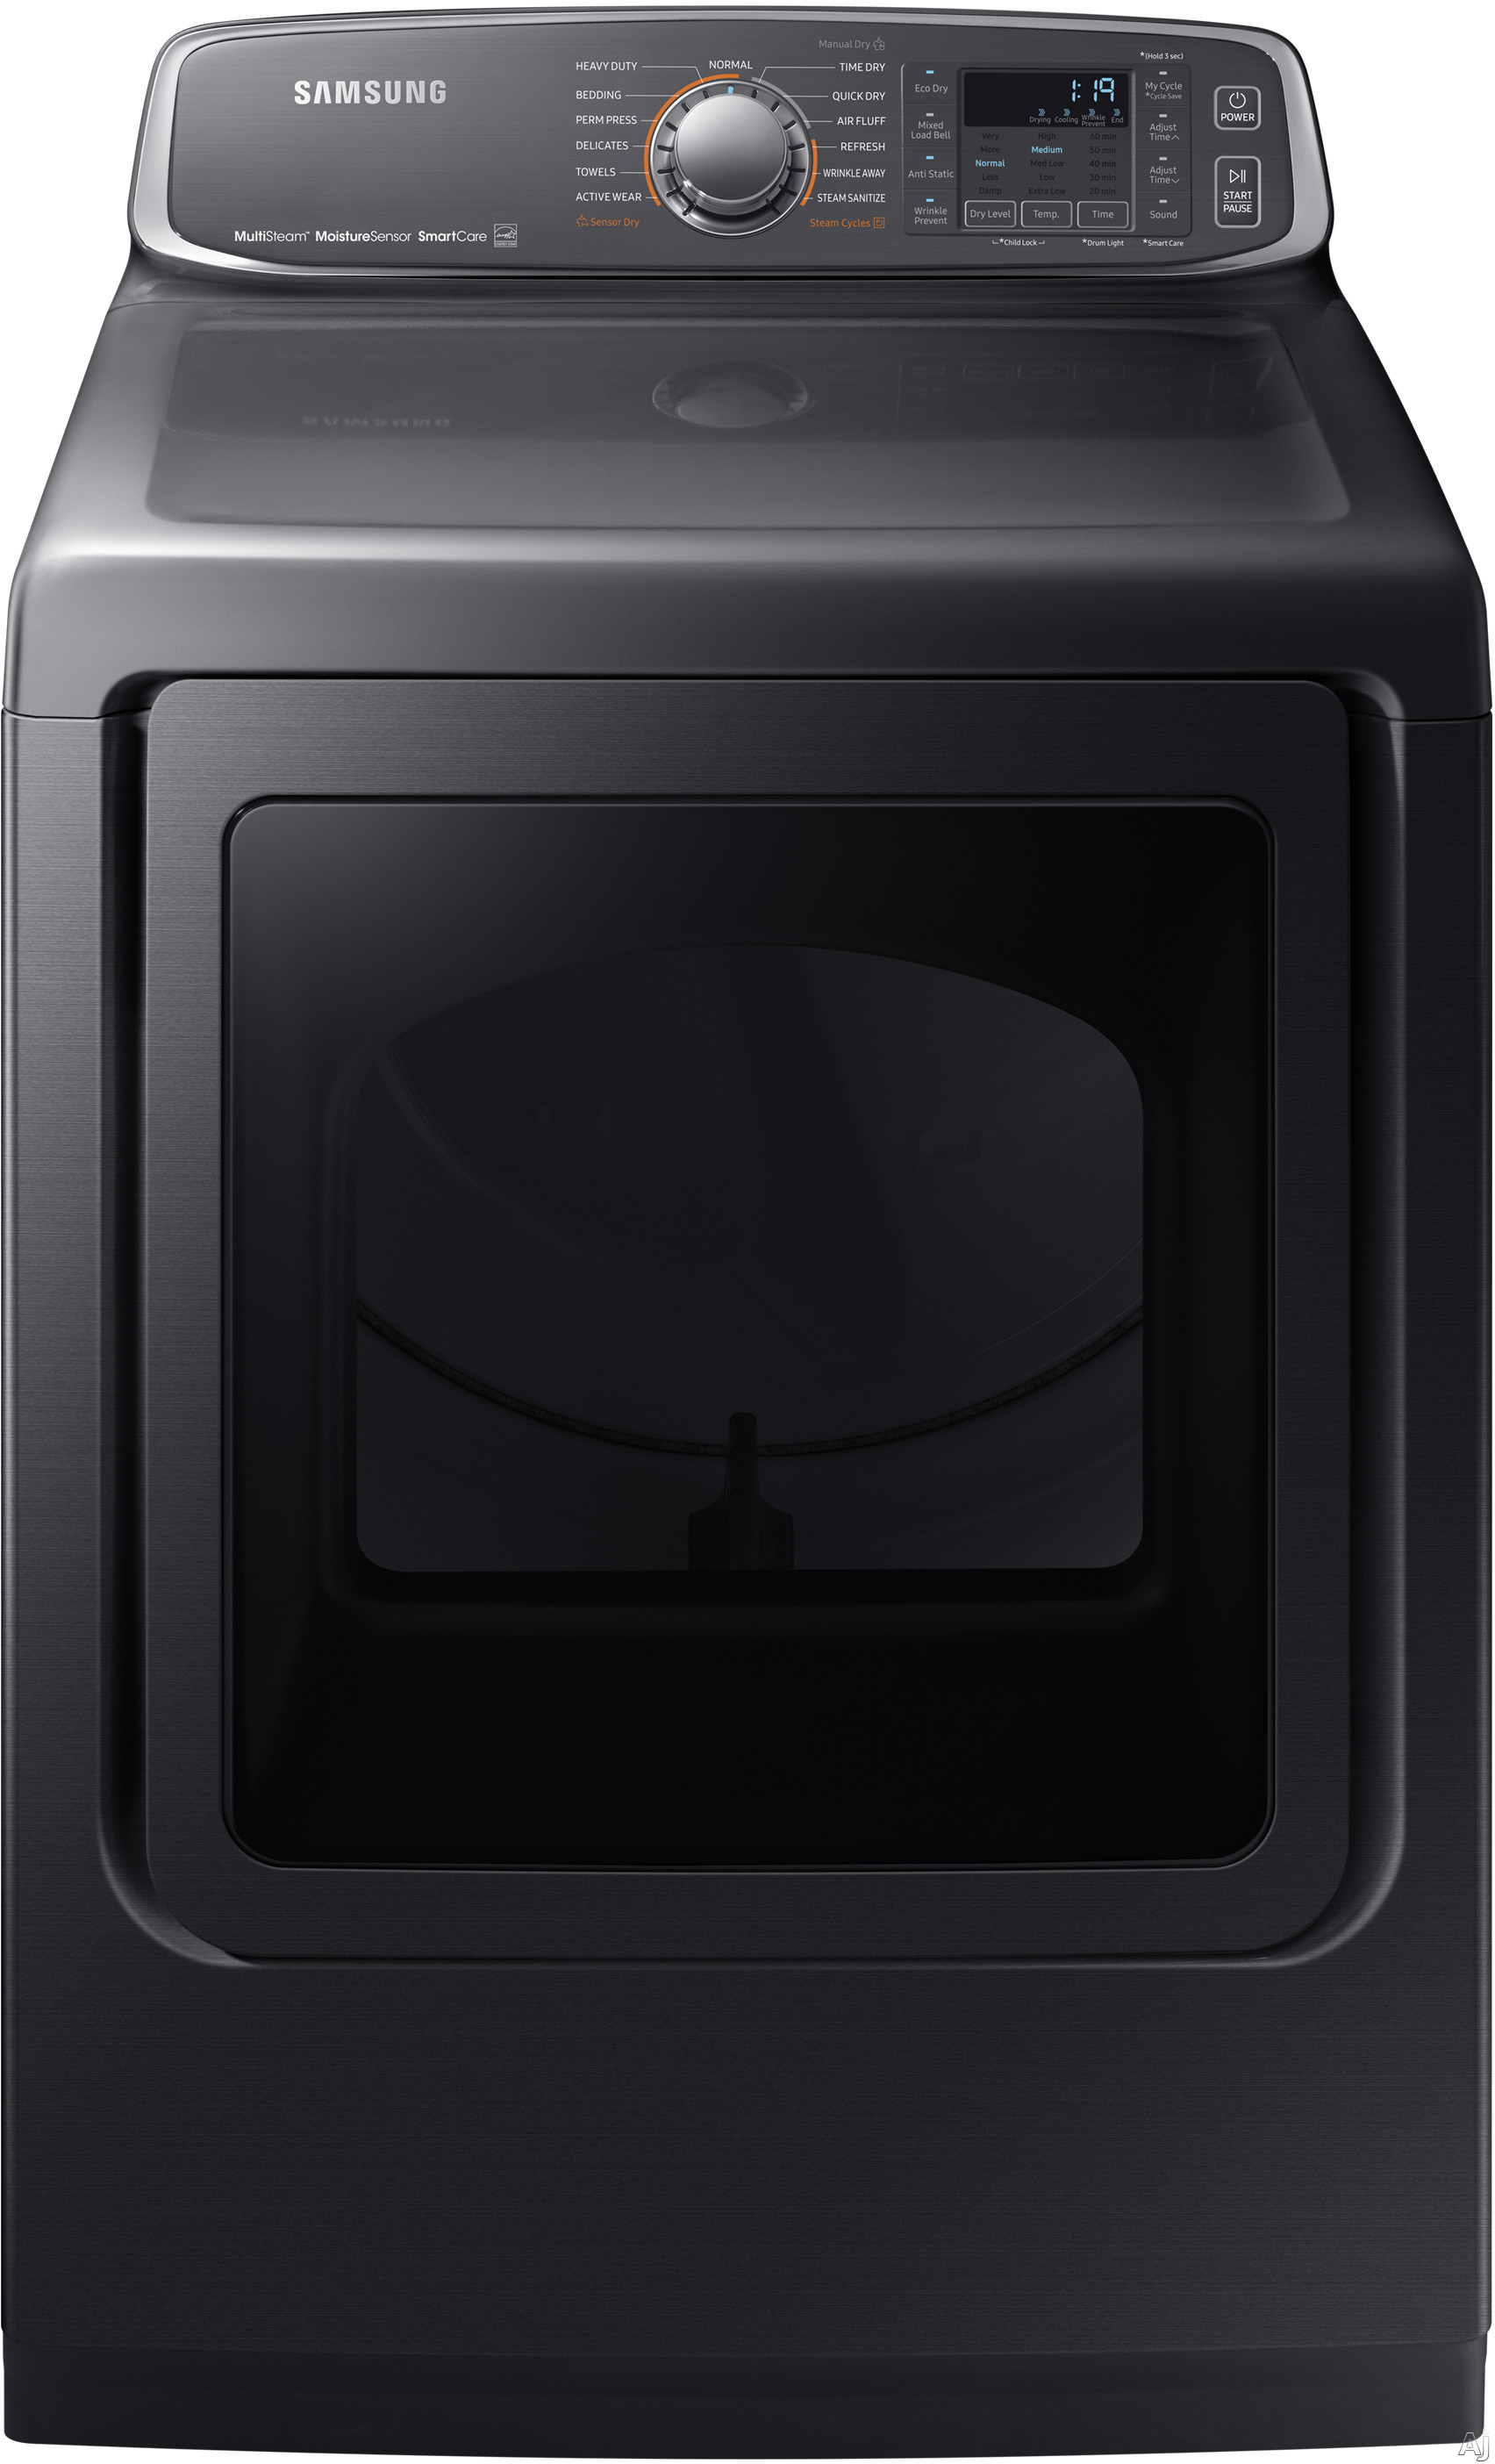 Image of Samsung DVE52M7750V 27 Inch Electric Dryer with Multi-Steam™, Wrinkle Prevent Option, Sensor Dry, 13 Dry Cycles, Smart Care, 4-Way Venting, Interior Drum Light, Eco Dry, Reversible Door, ENERGY STAR® and 7.4 cu. ft. Capacity: Black Stainless Steel